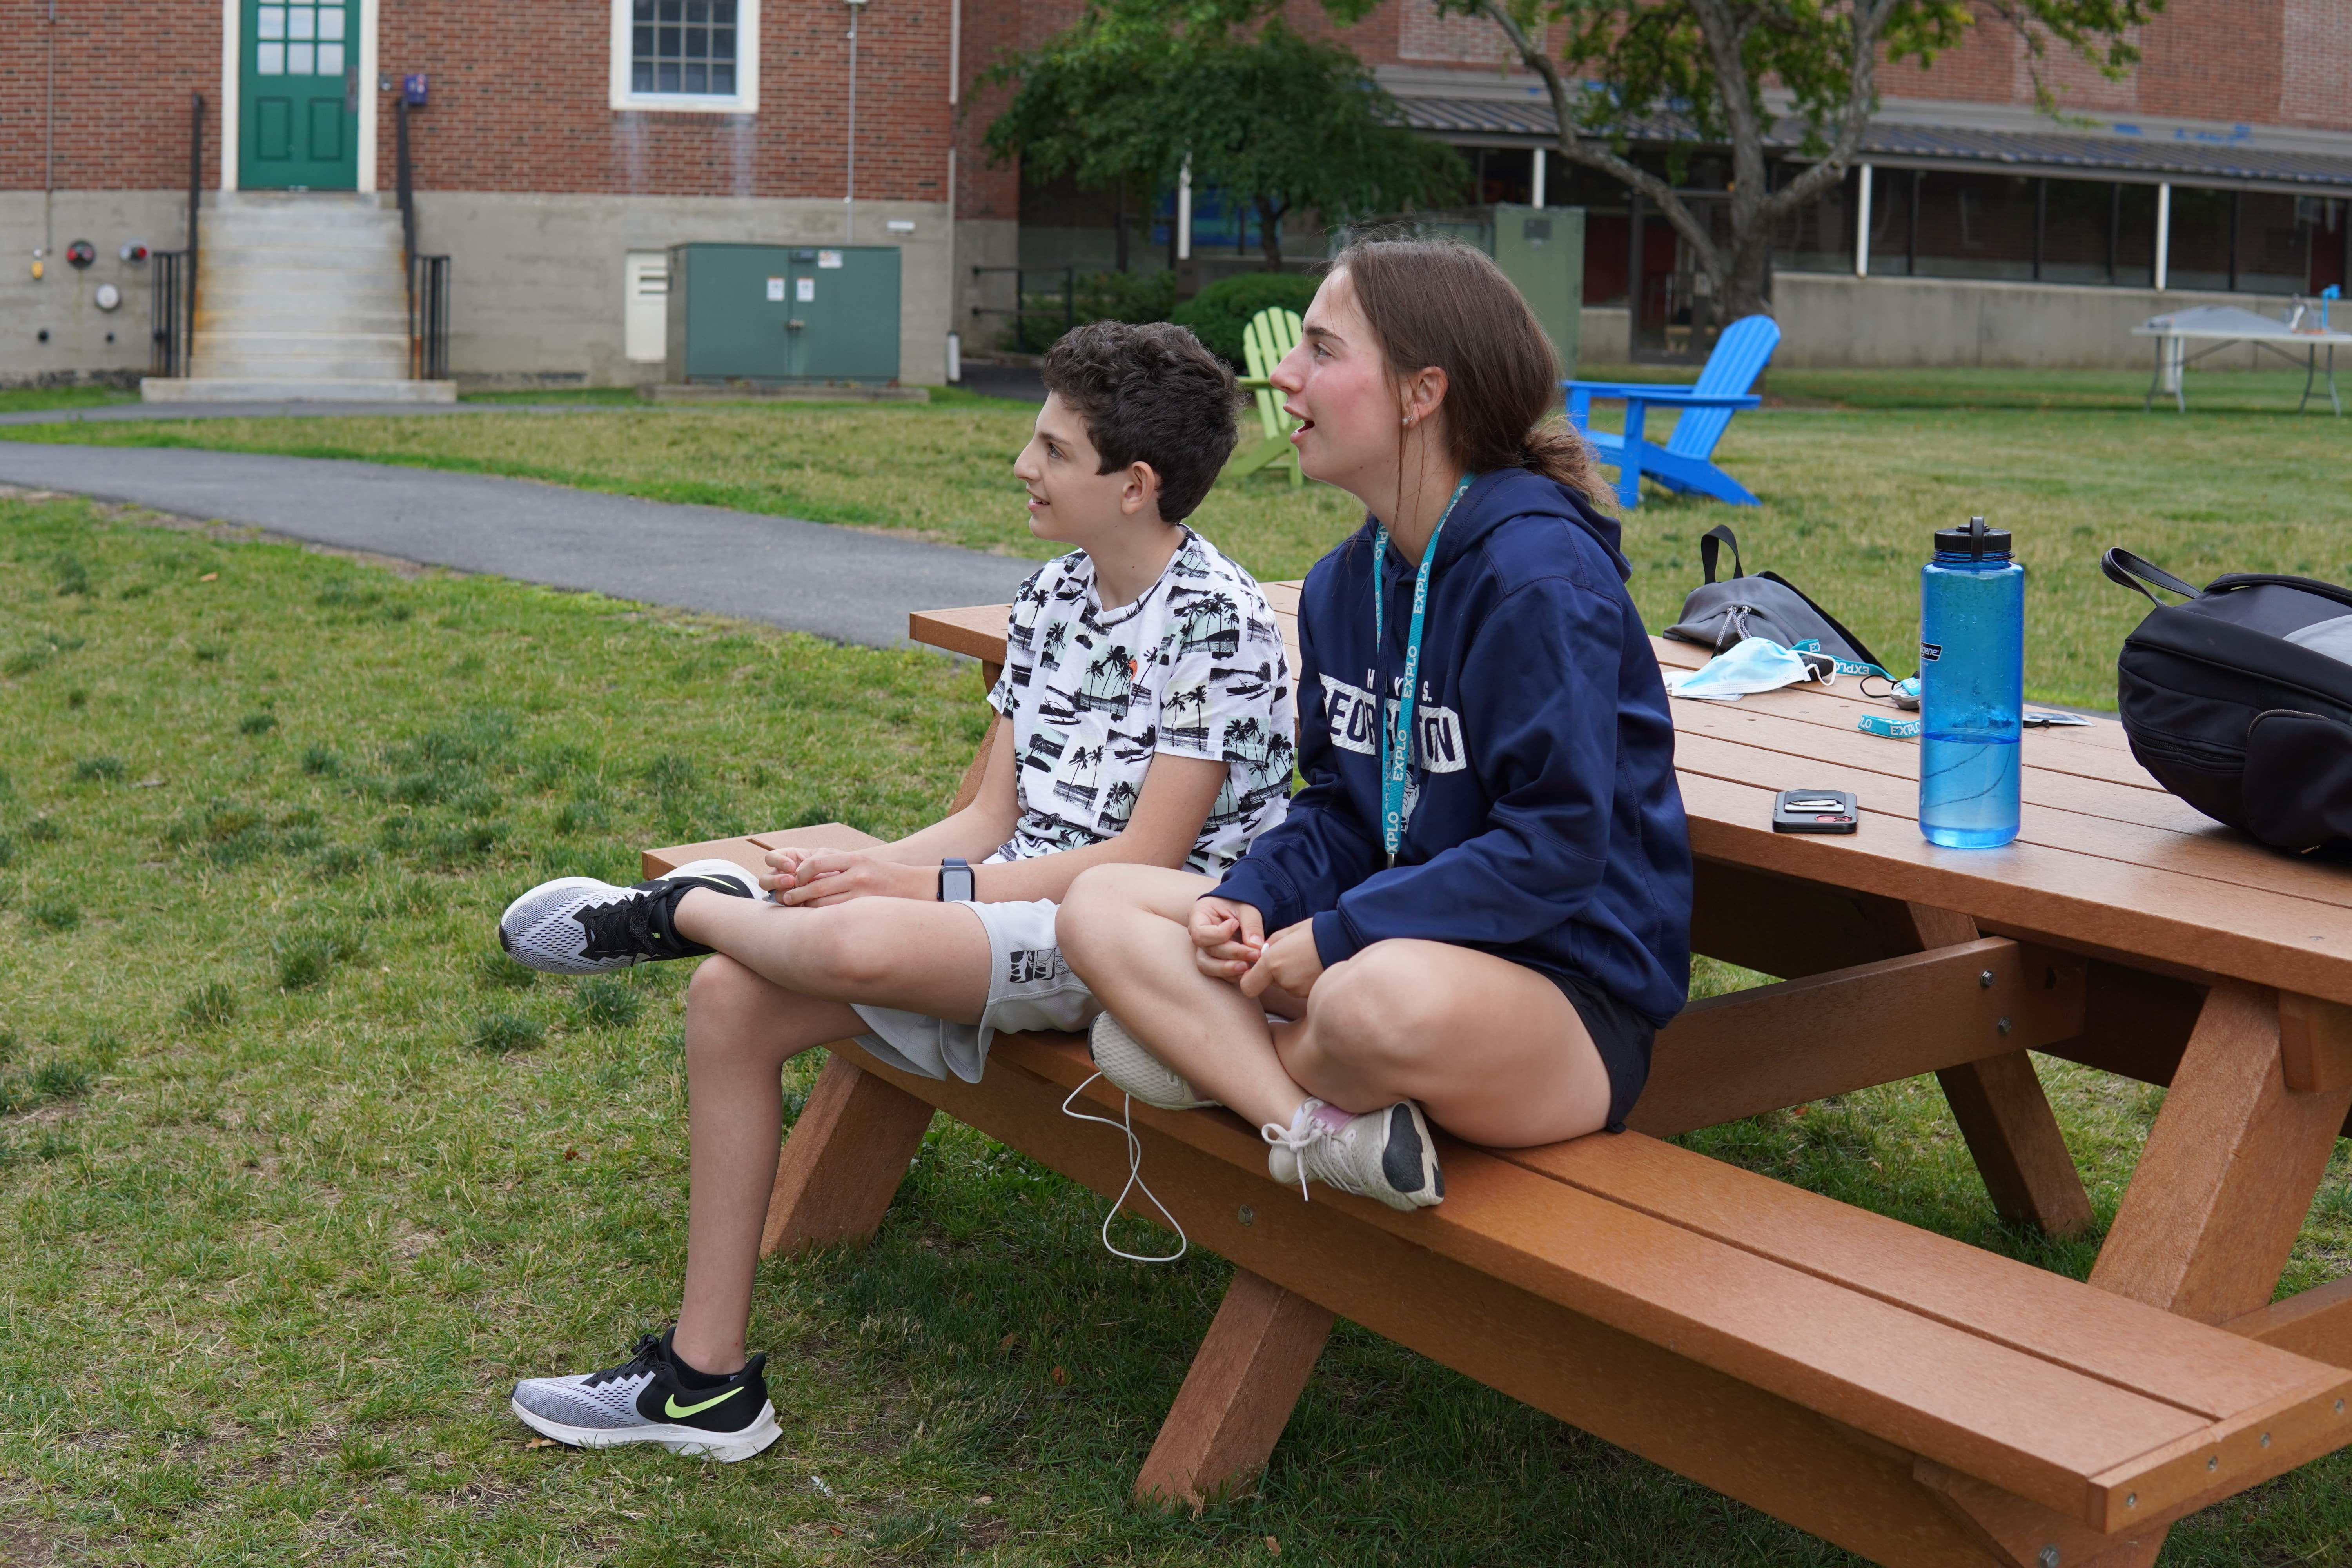 Two students sit on a picnic table bench. There is a water bottle, backpack, and other items on the table.